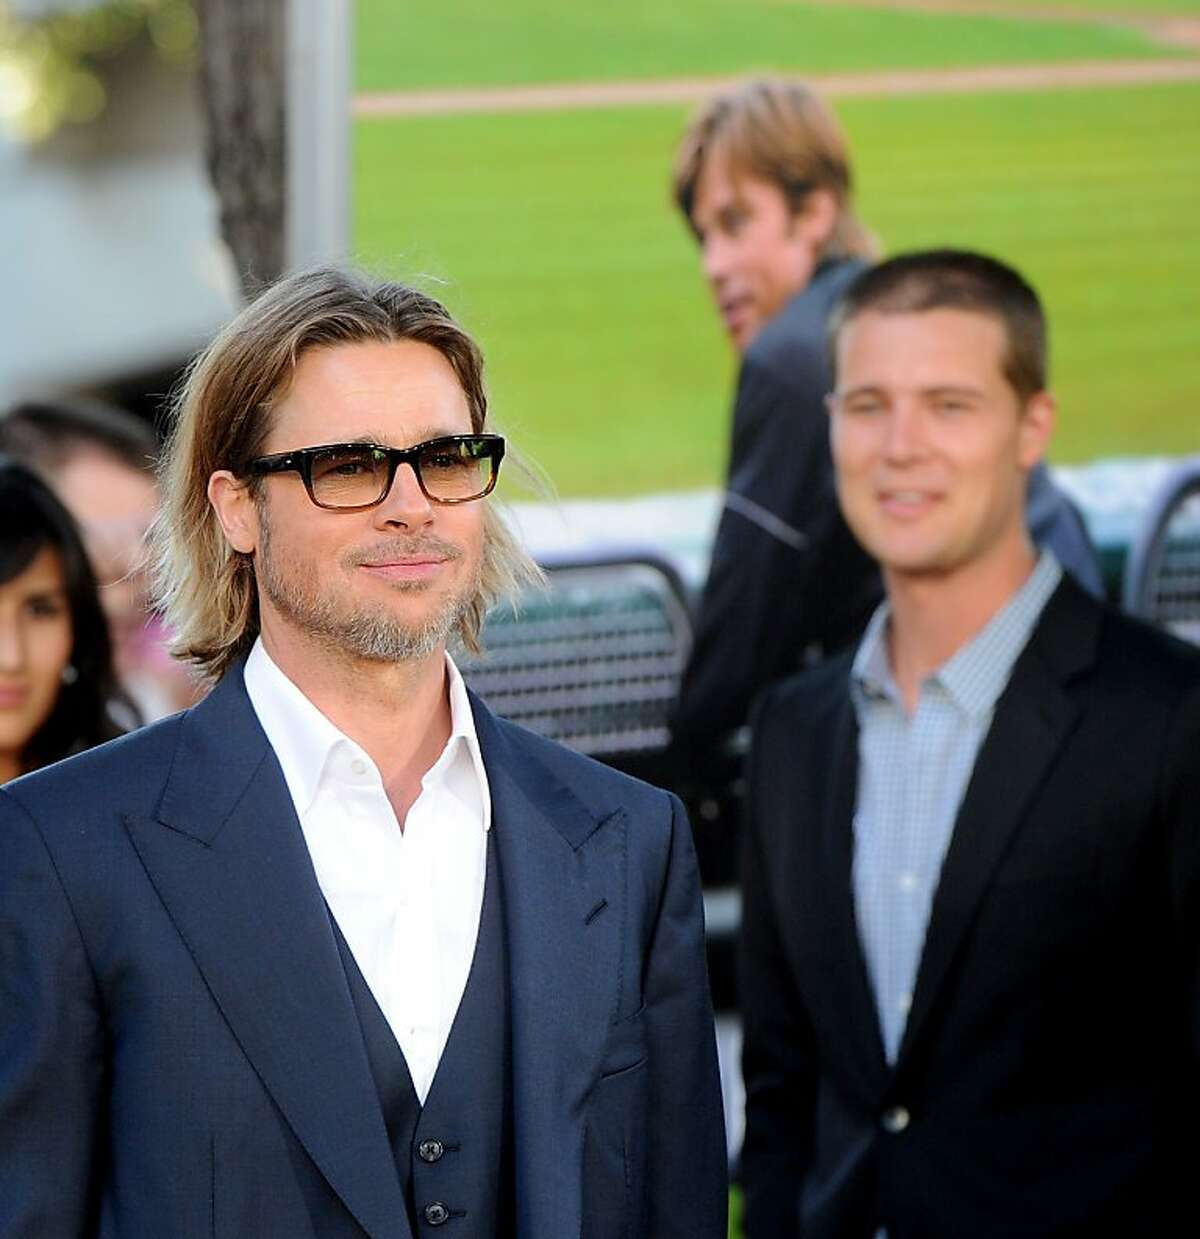 """Brad Pitt arrives for the world premiere of """"Moneyball"""" at the Paramount Theatre on Monday, Sept. 19, 2011, in Oakland, Calif. Behind him is doppleganger Reed Thompson who plays the young version of Brad's character, Billy Beane, in the movie."""